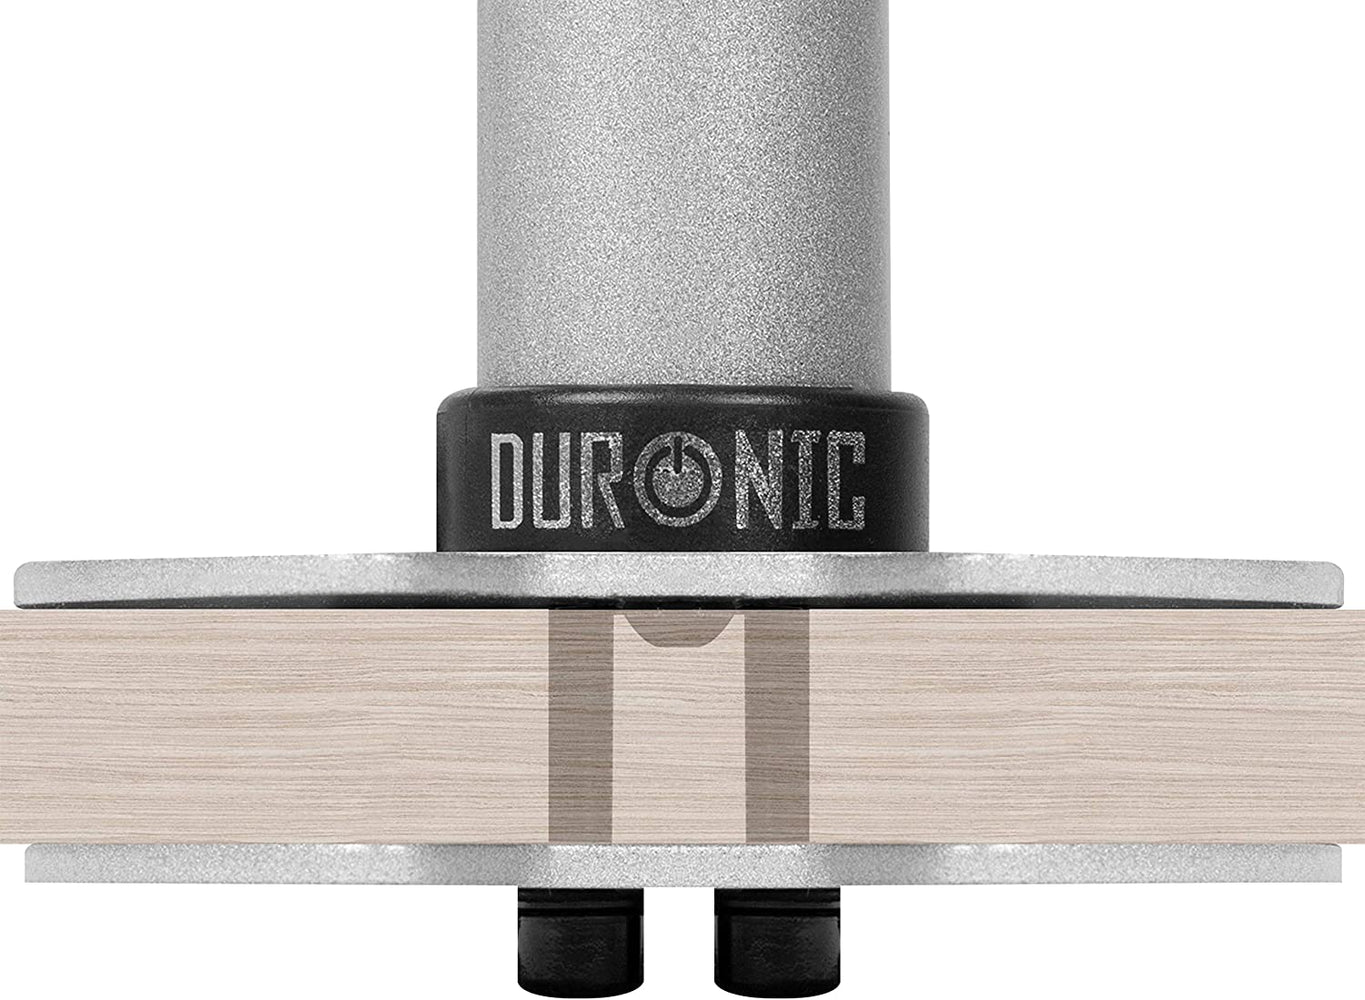 Duronic Grommet 1 [SILVER] DM-GR-01 SR | Adaptor for Fixing Monitor Arm Bracket via a Hole in the Desk | Compatible with Duronic Desk Mounts DM15, DM25, DM35 Ranges and DM451 ONLY